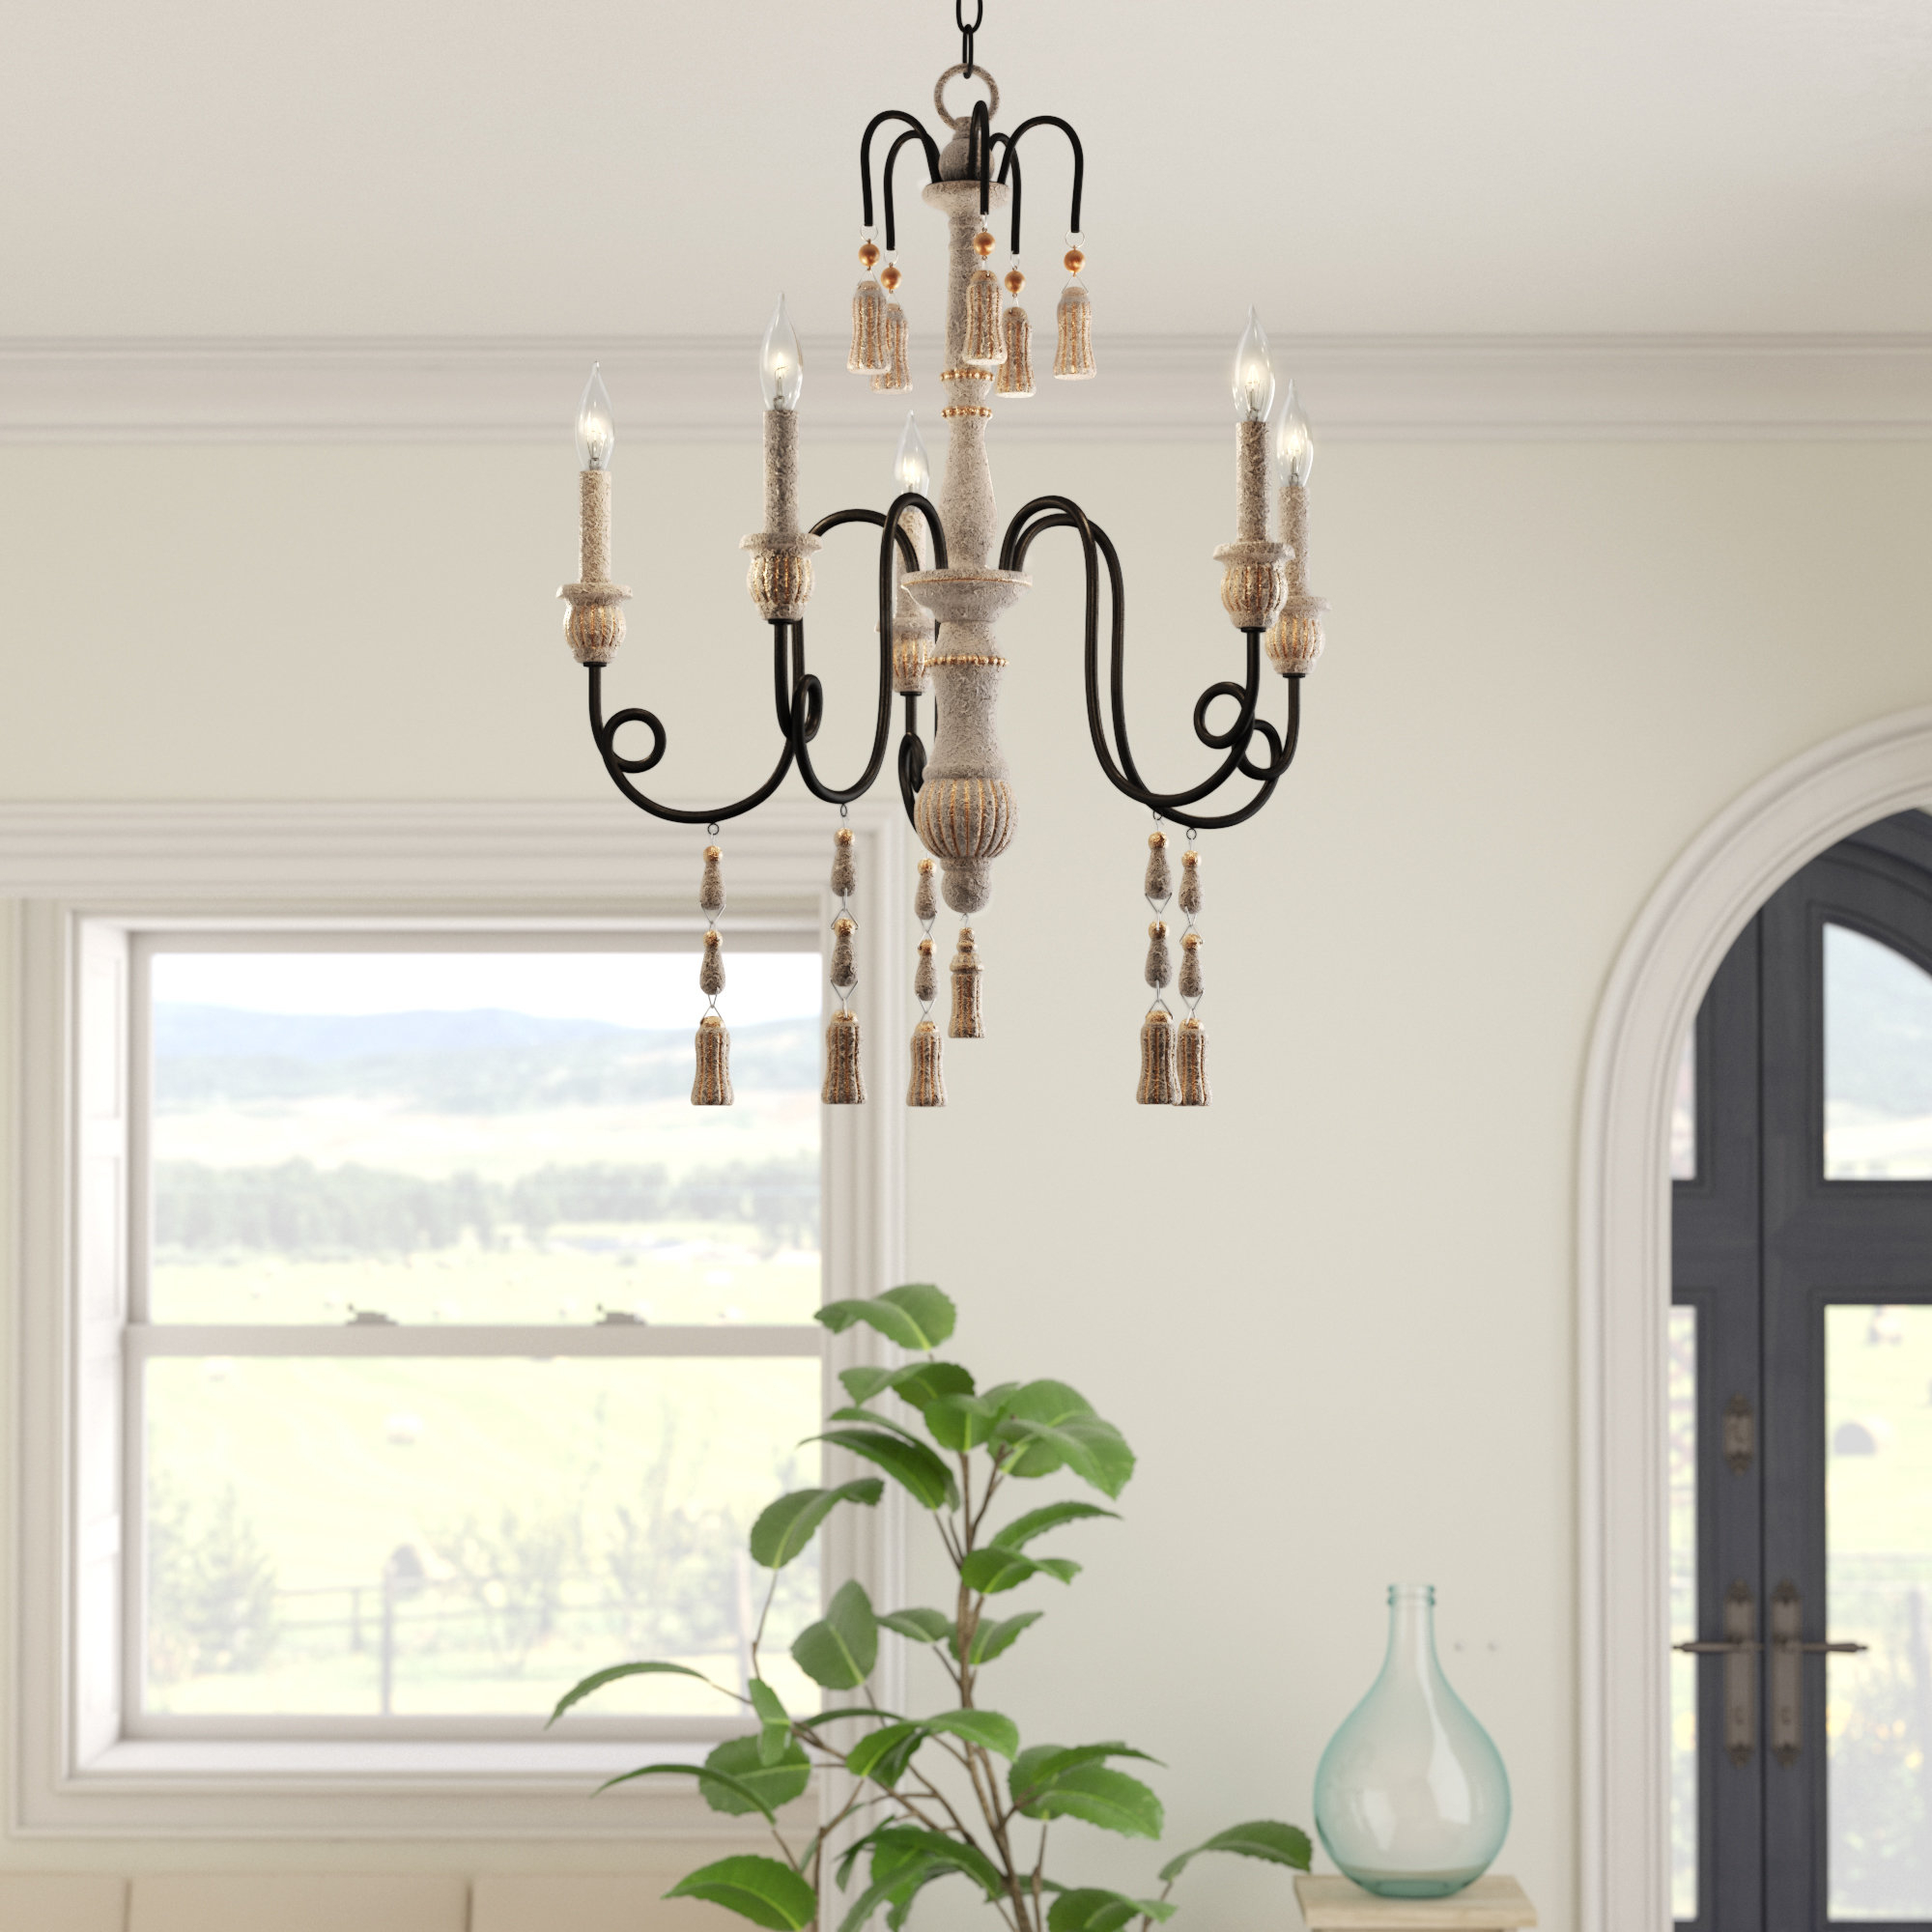 Hassan 5 Light Candle Style Chandelier Within Well Known Armande Candle Style Chandeliers (Gallery 20 of 20)